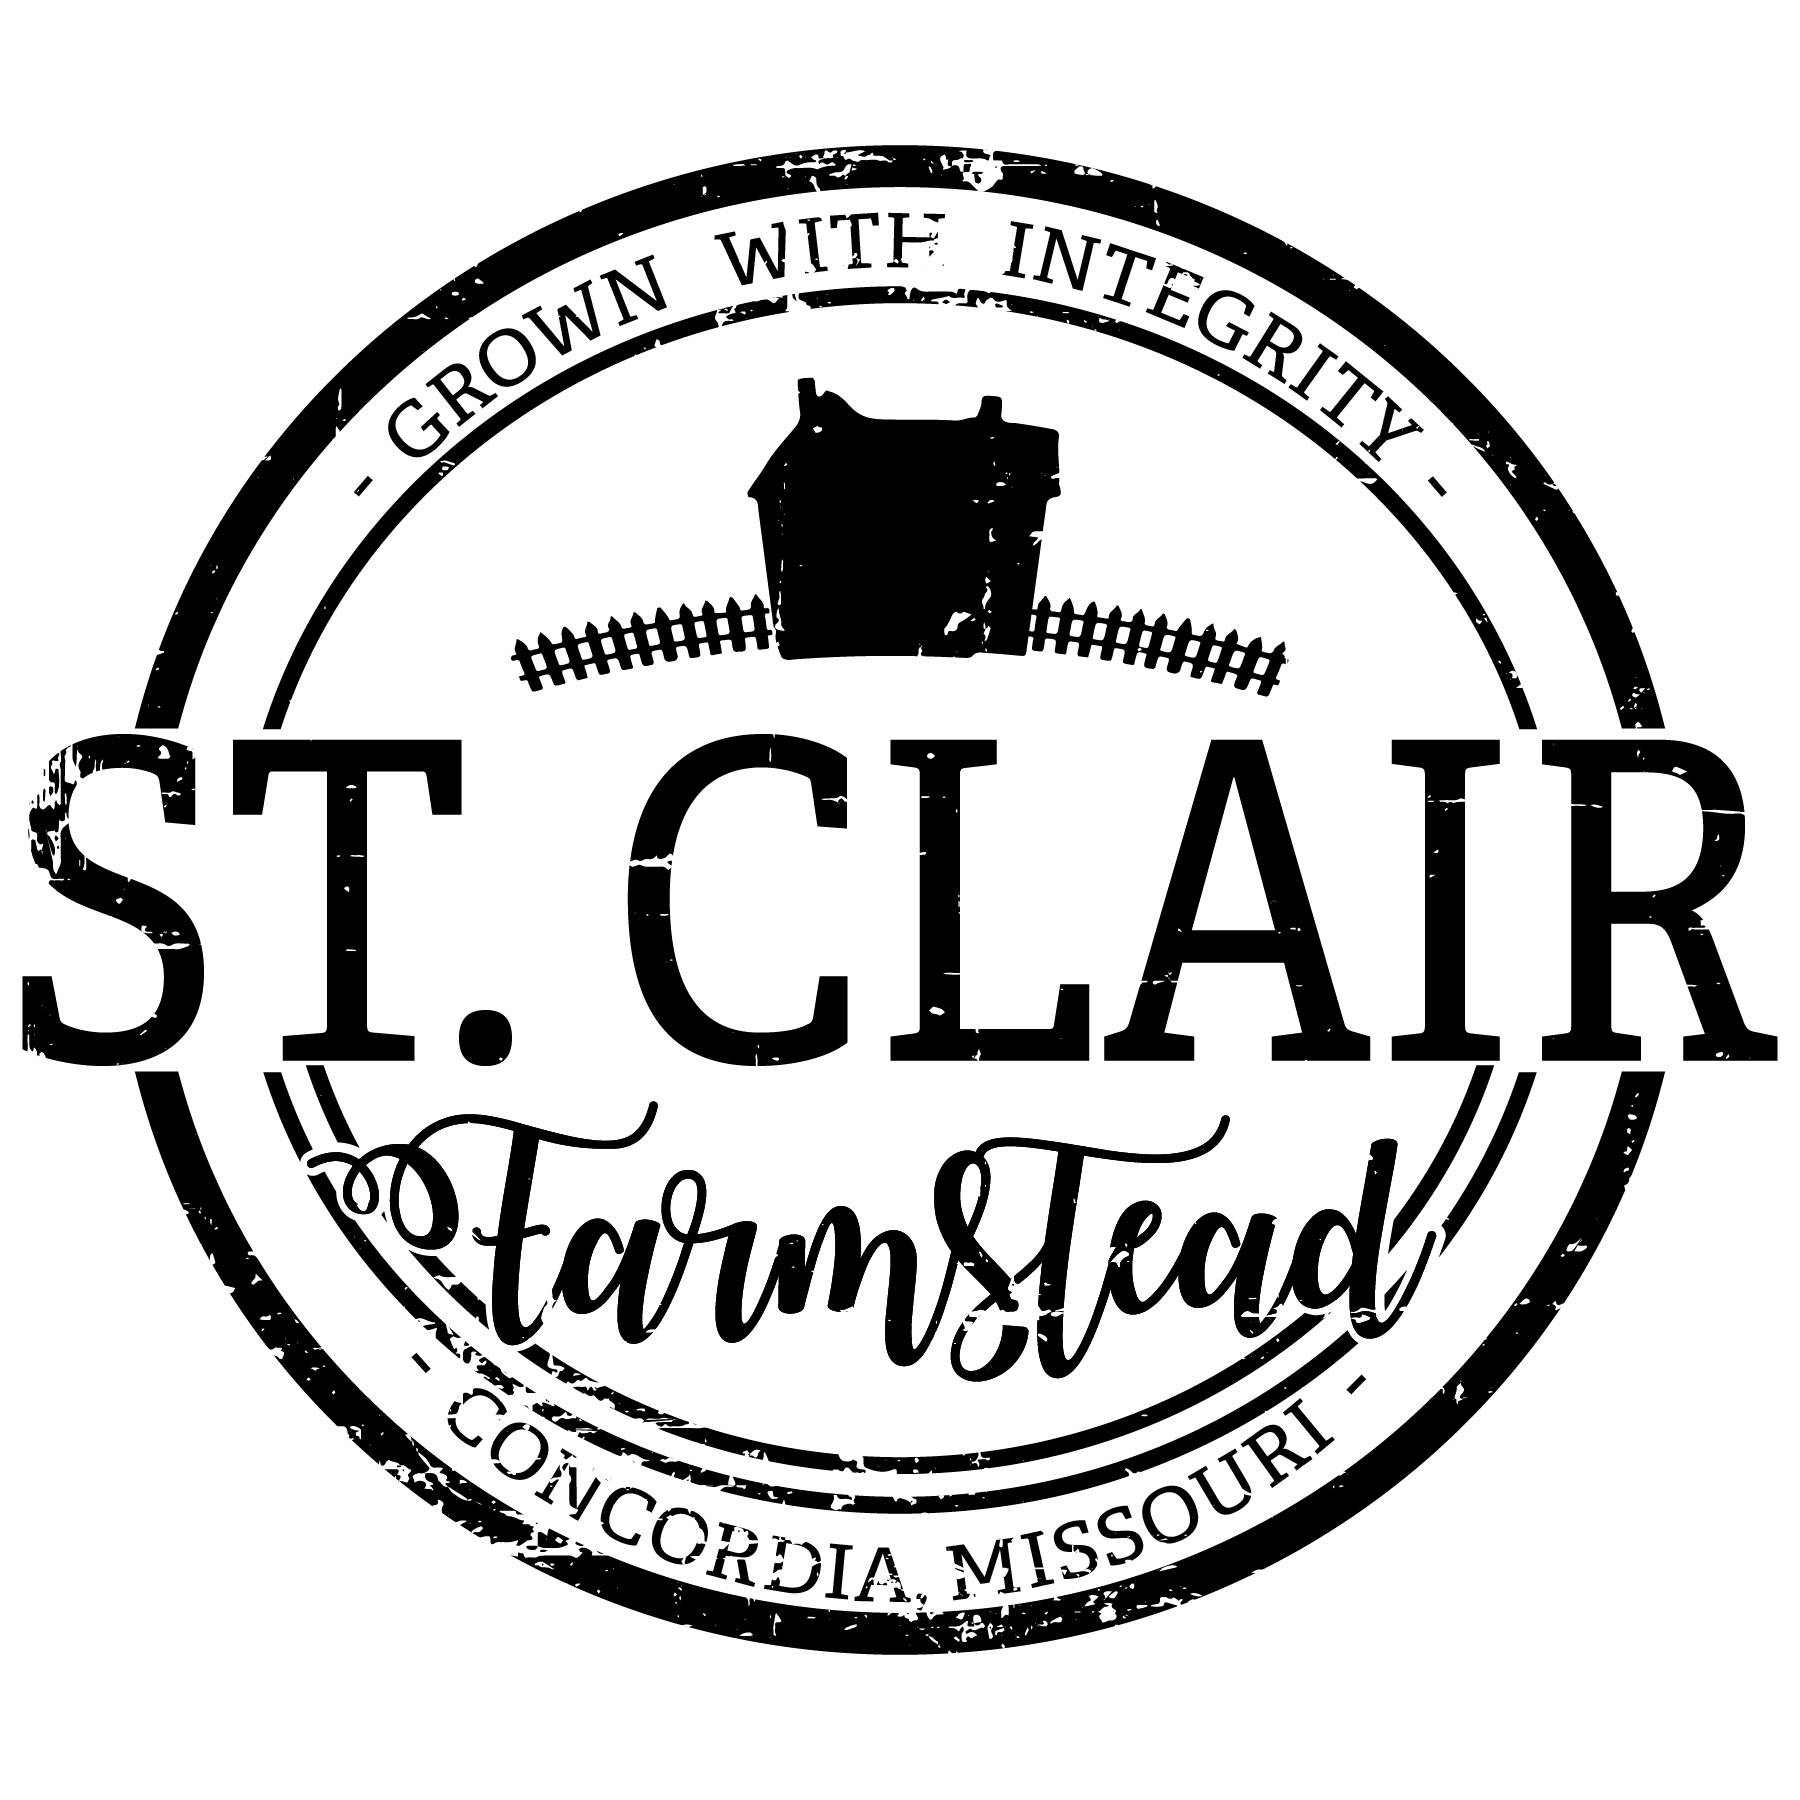 St.-Clair-Farmstead-Final-Black-Transparent-02-(1).png